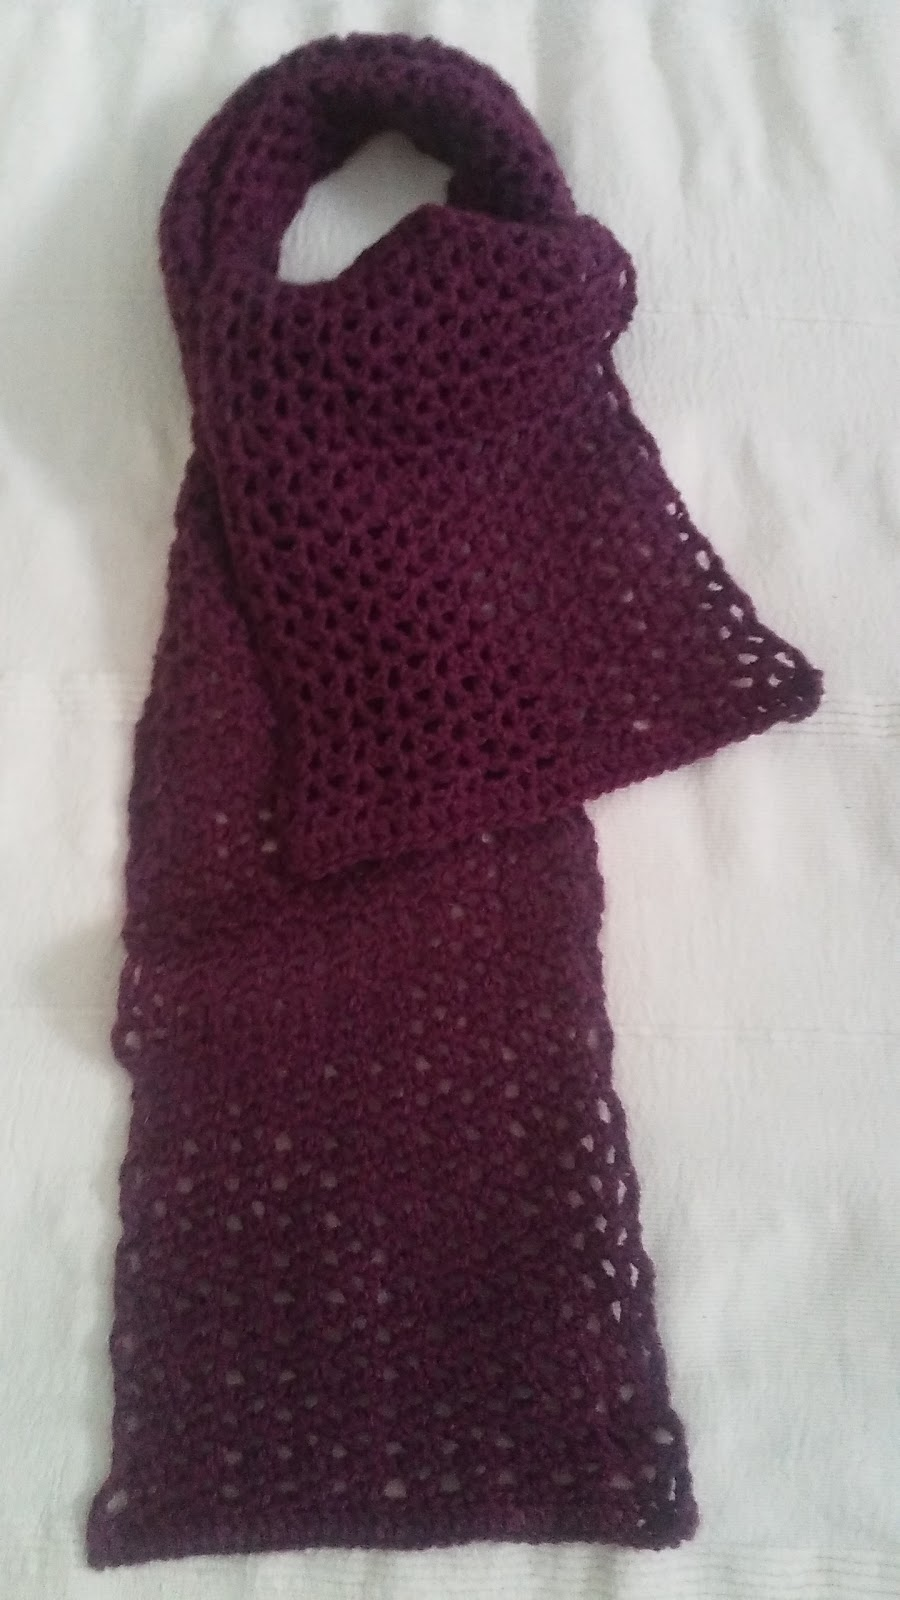 Crochet & Knitting: V-Stitch scarf